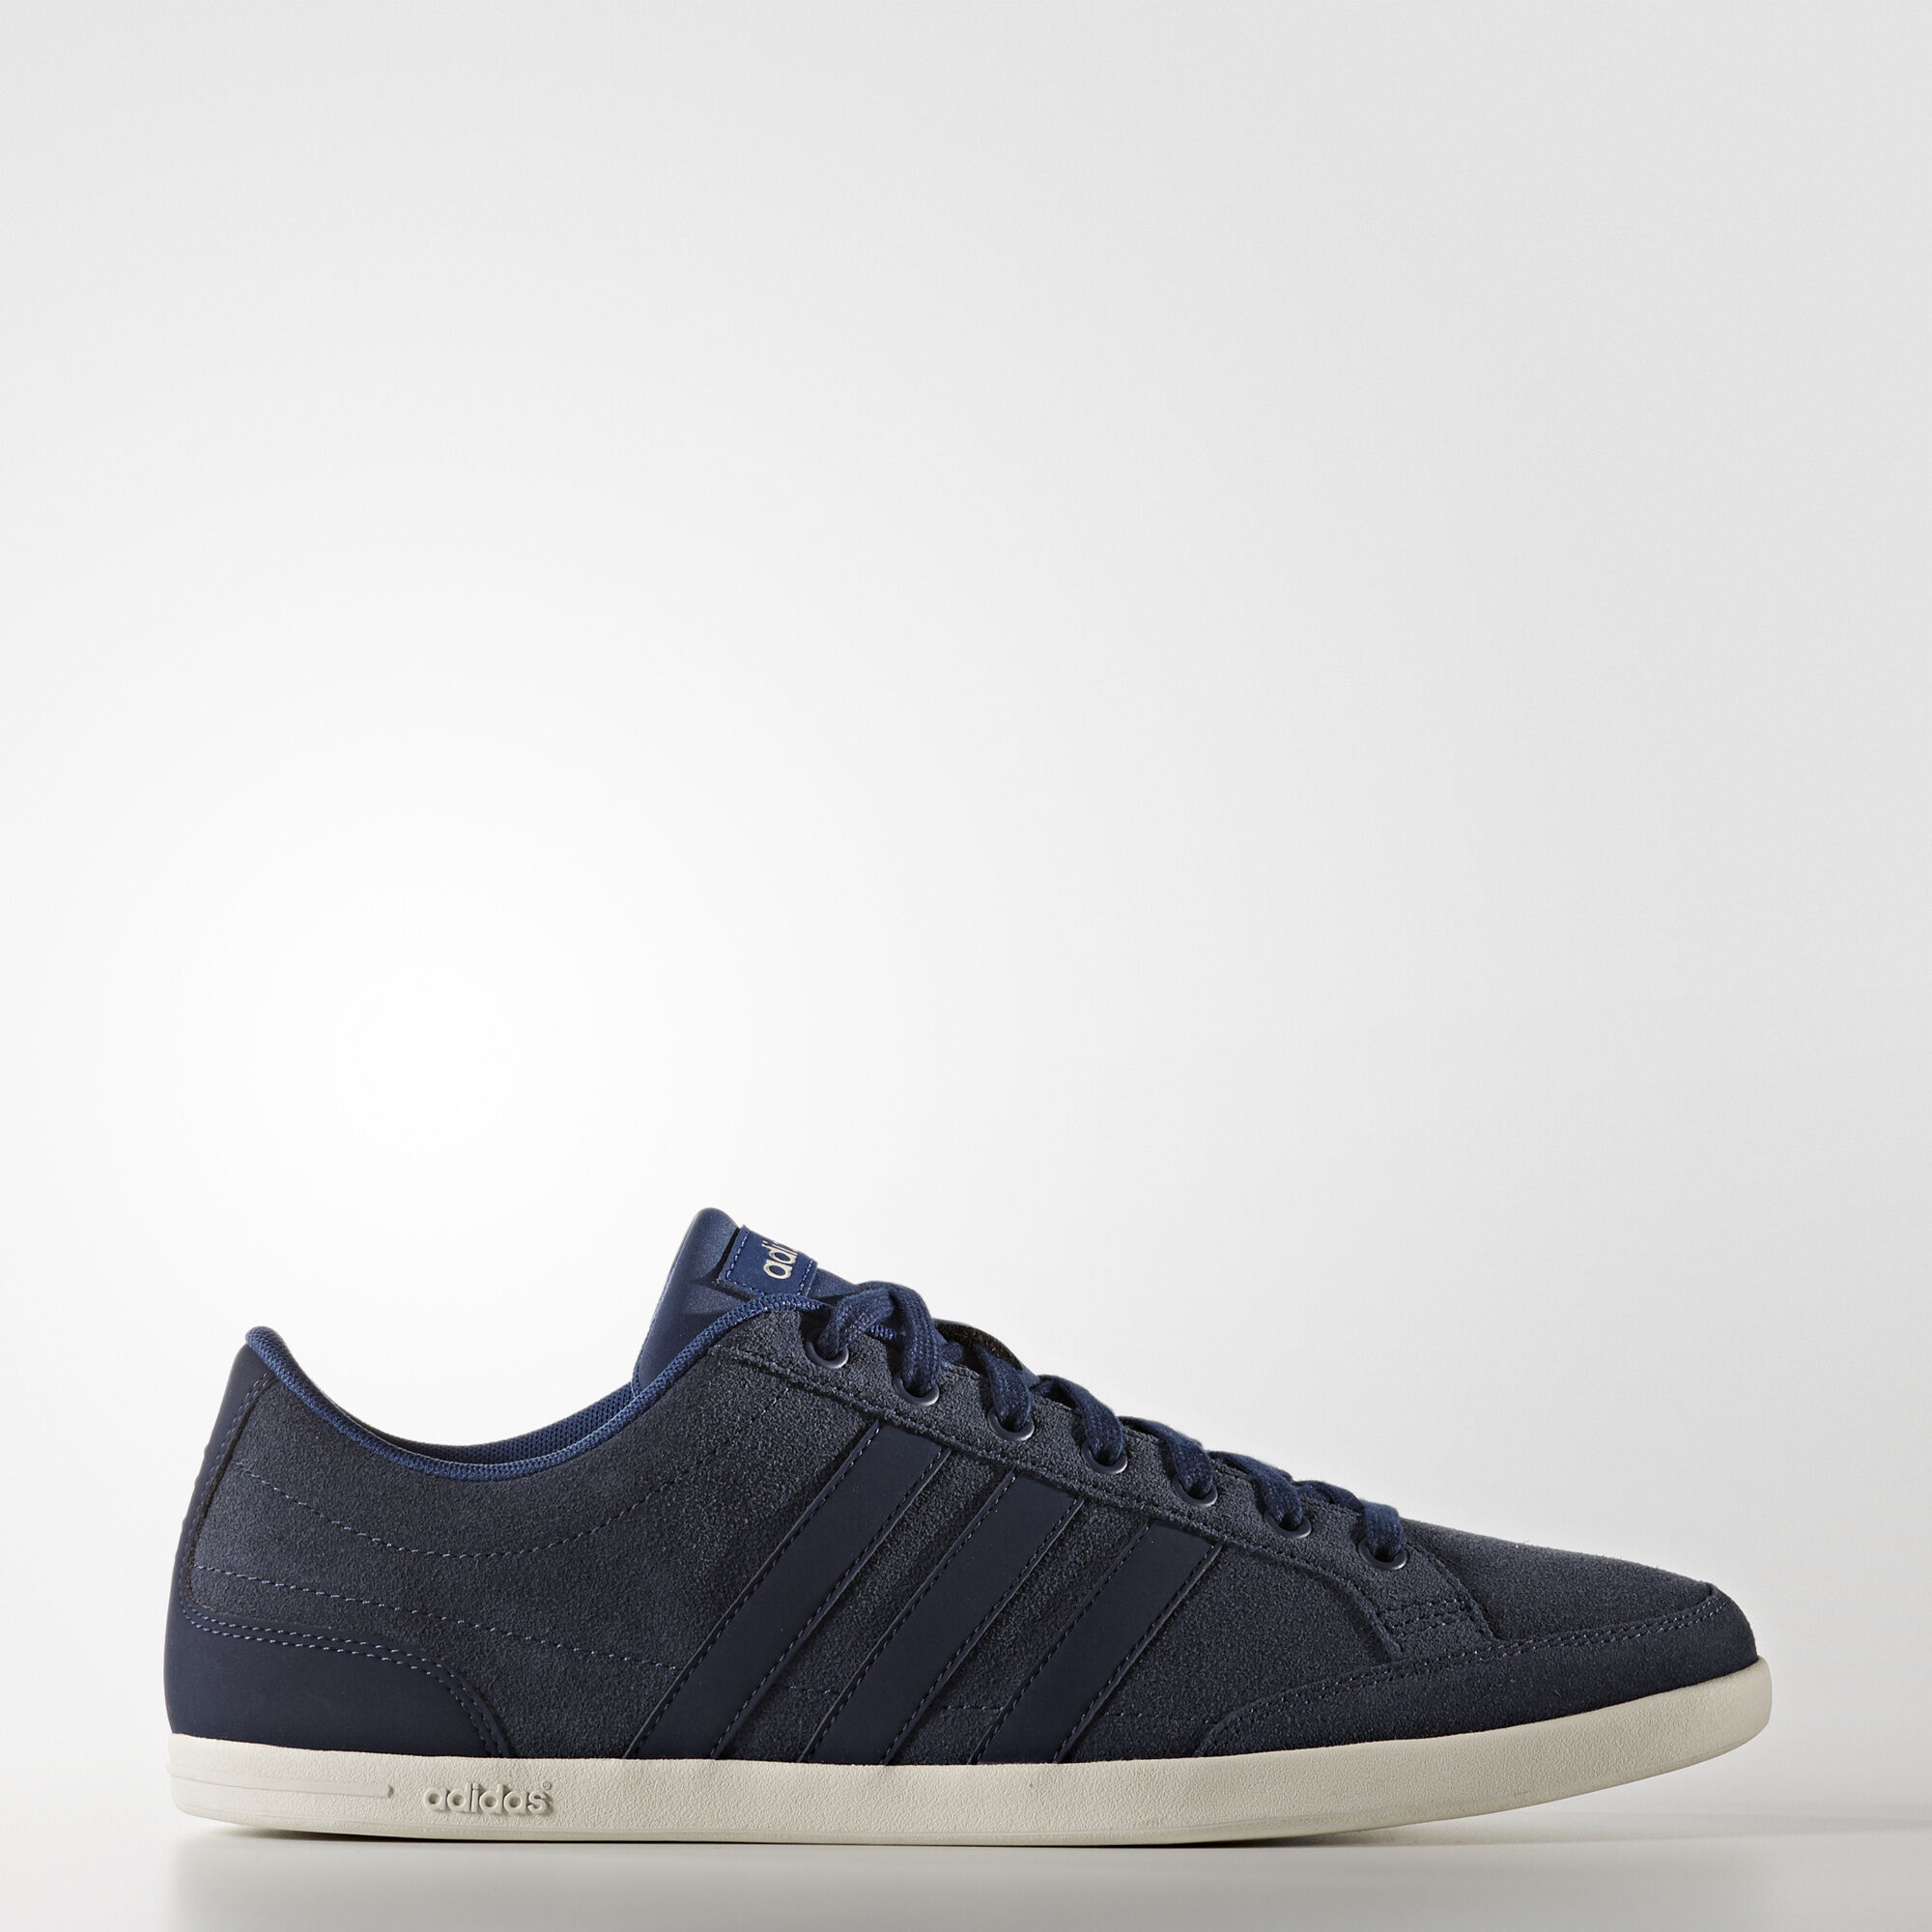 Adidas Neo Vl Court Leather